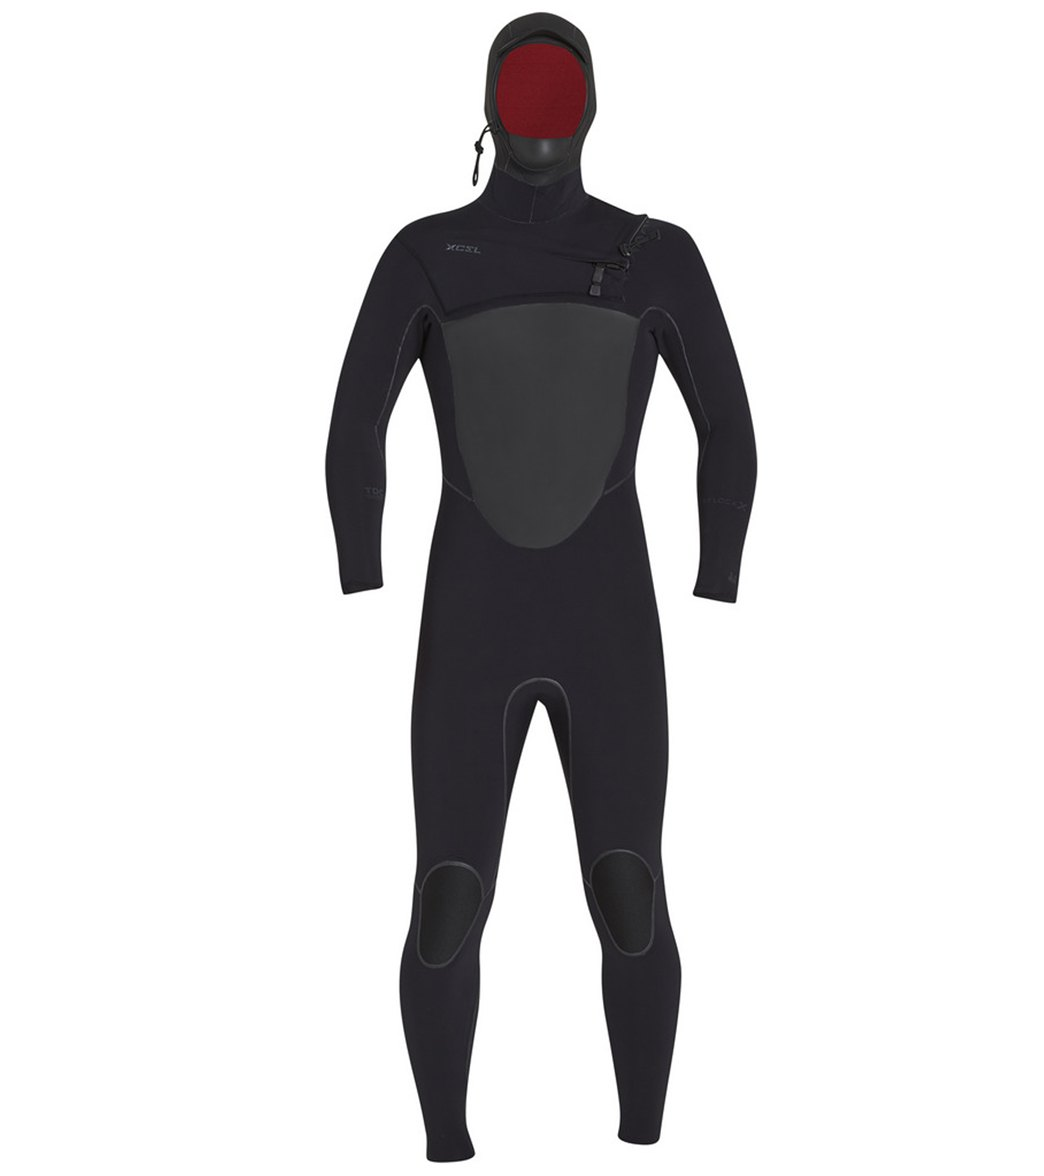 af28acda93 Xcel Men's 5/4mm Drylock X Celliant Hooded Front Zip Fullsuit Wetsuit